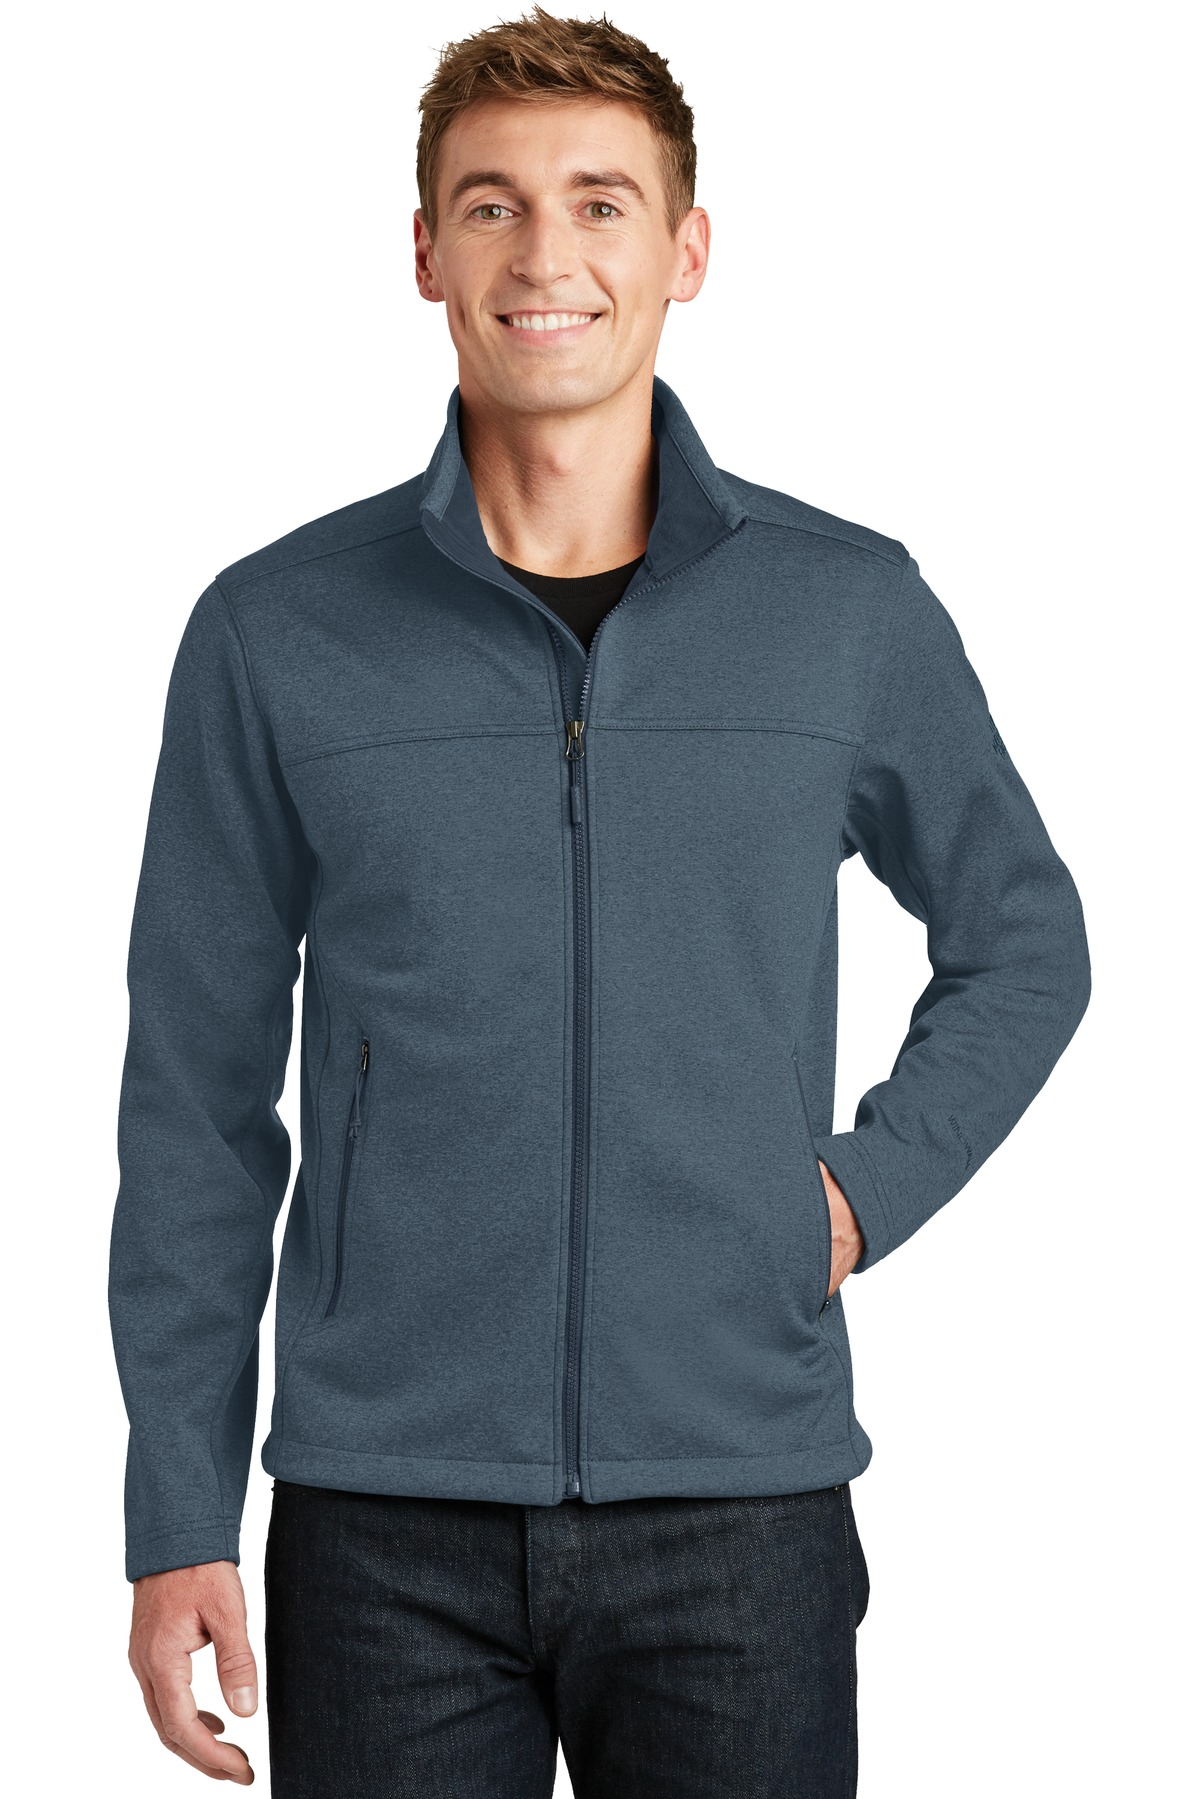 The North Face  ®  Ridgewall Soft Shell Jacket. NF0A3LGX - Urban Navy Heather